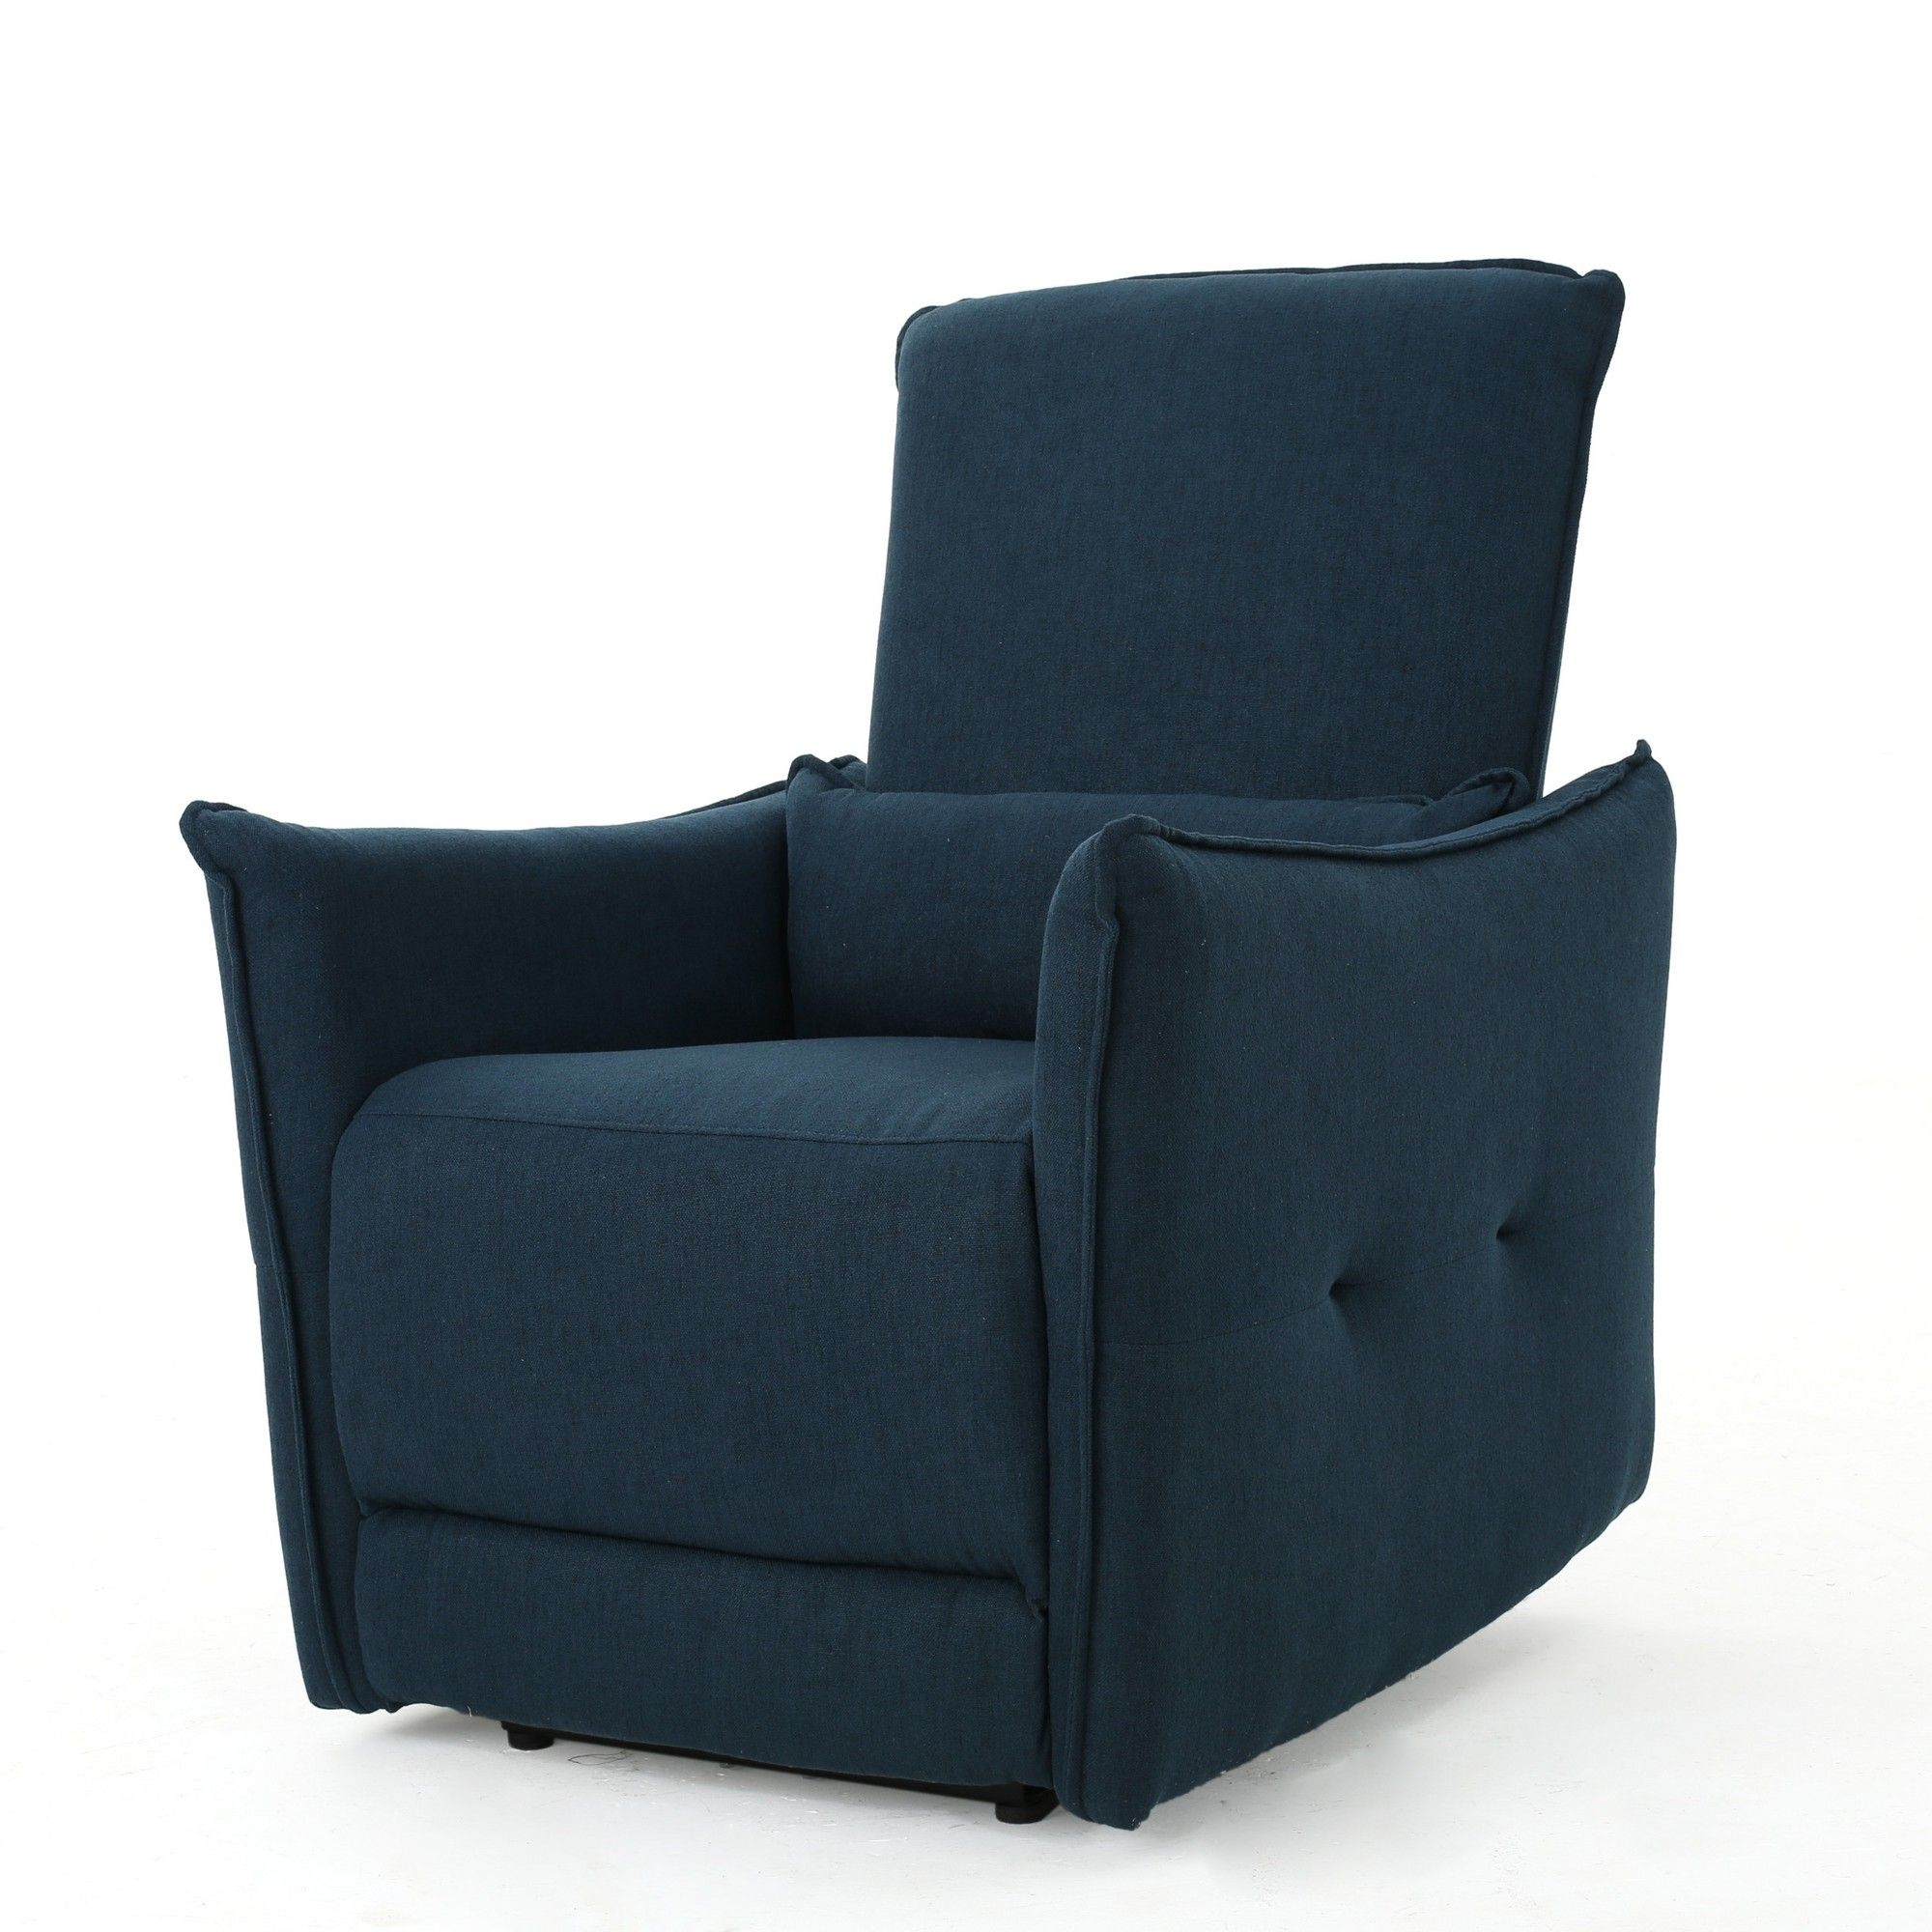 bodhi power recliner navy blue christopher knight home rh pinterest com